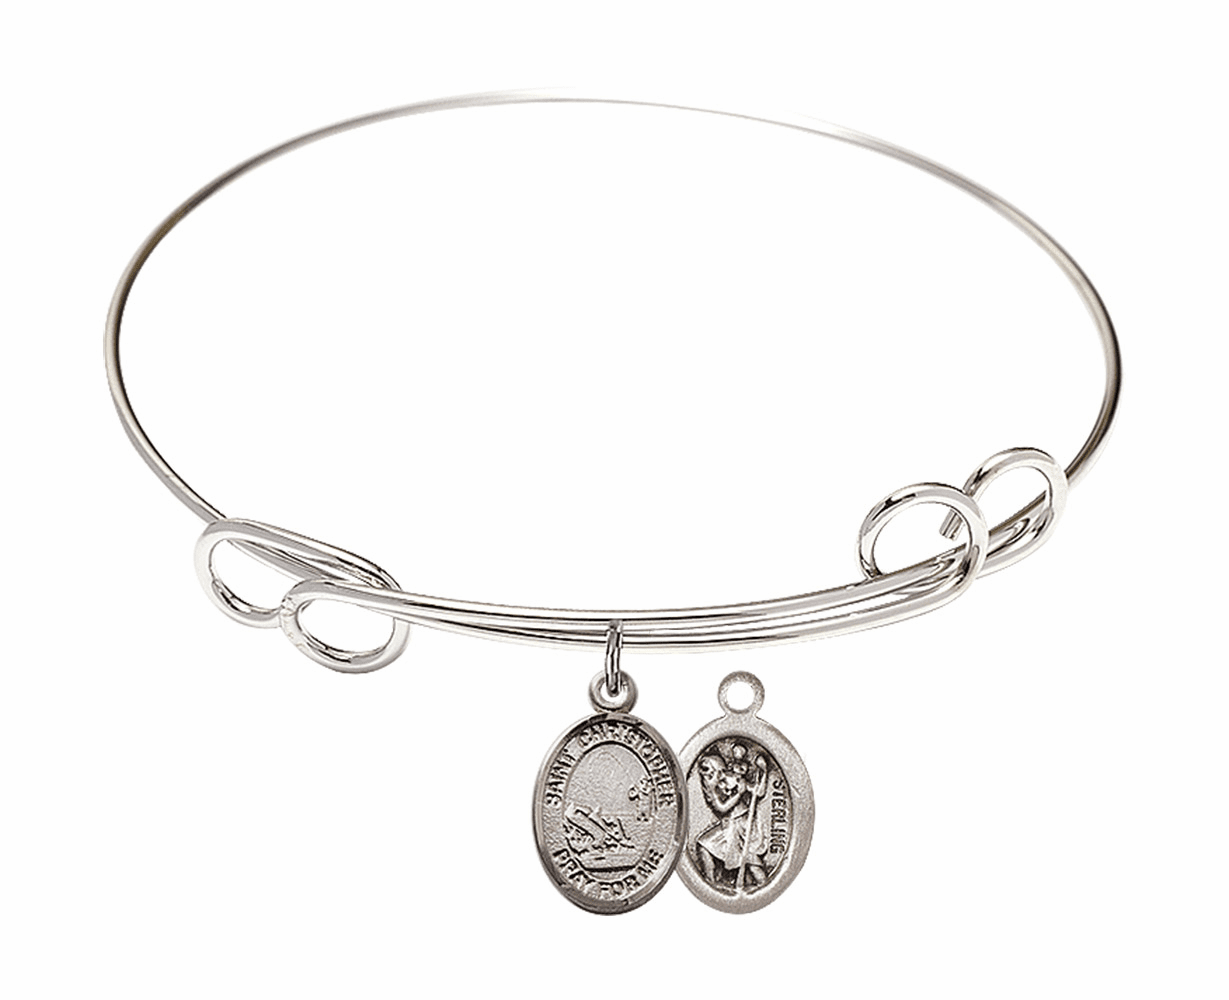 Round Loop St Christopher Fishing Bangle Charm Bracelet by Bliss